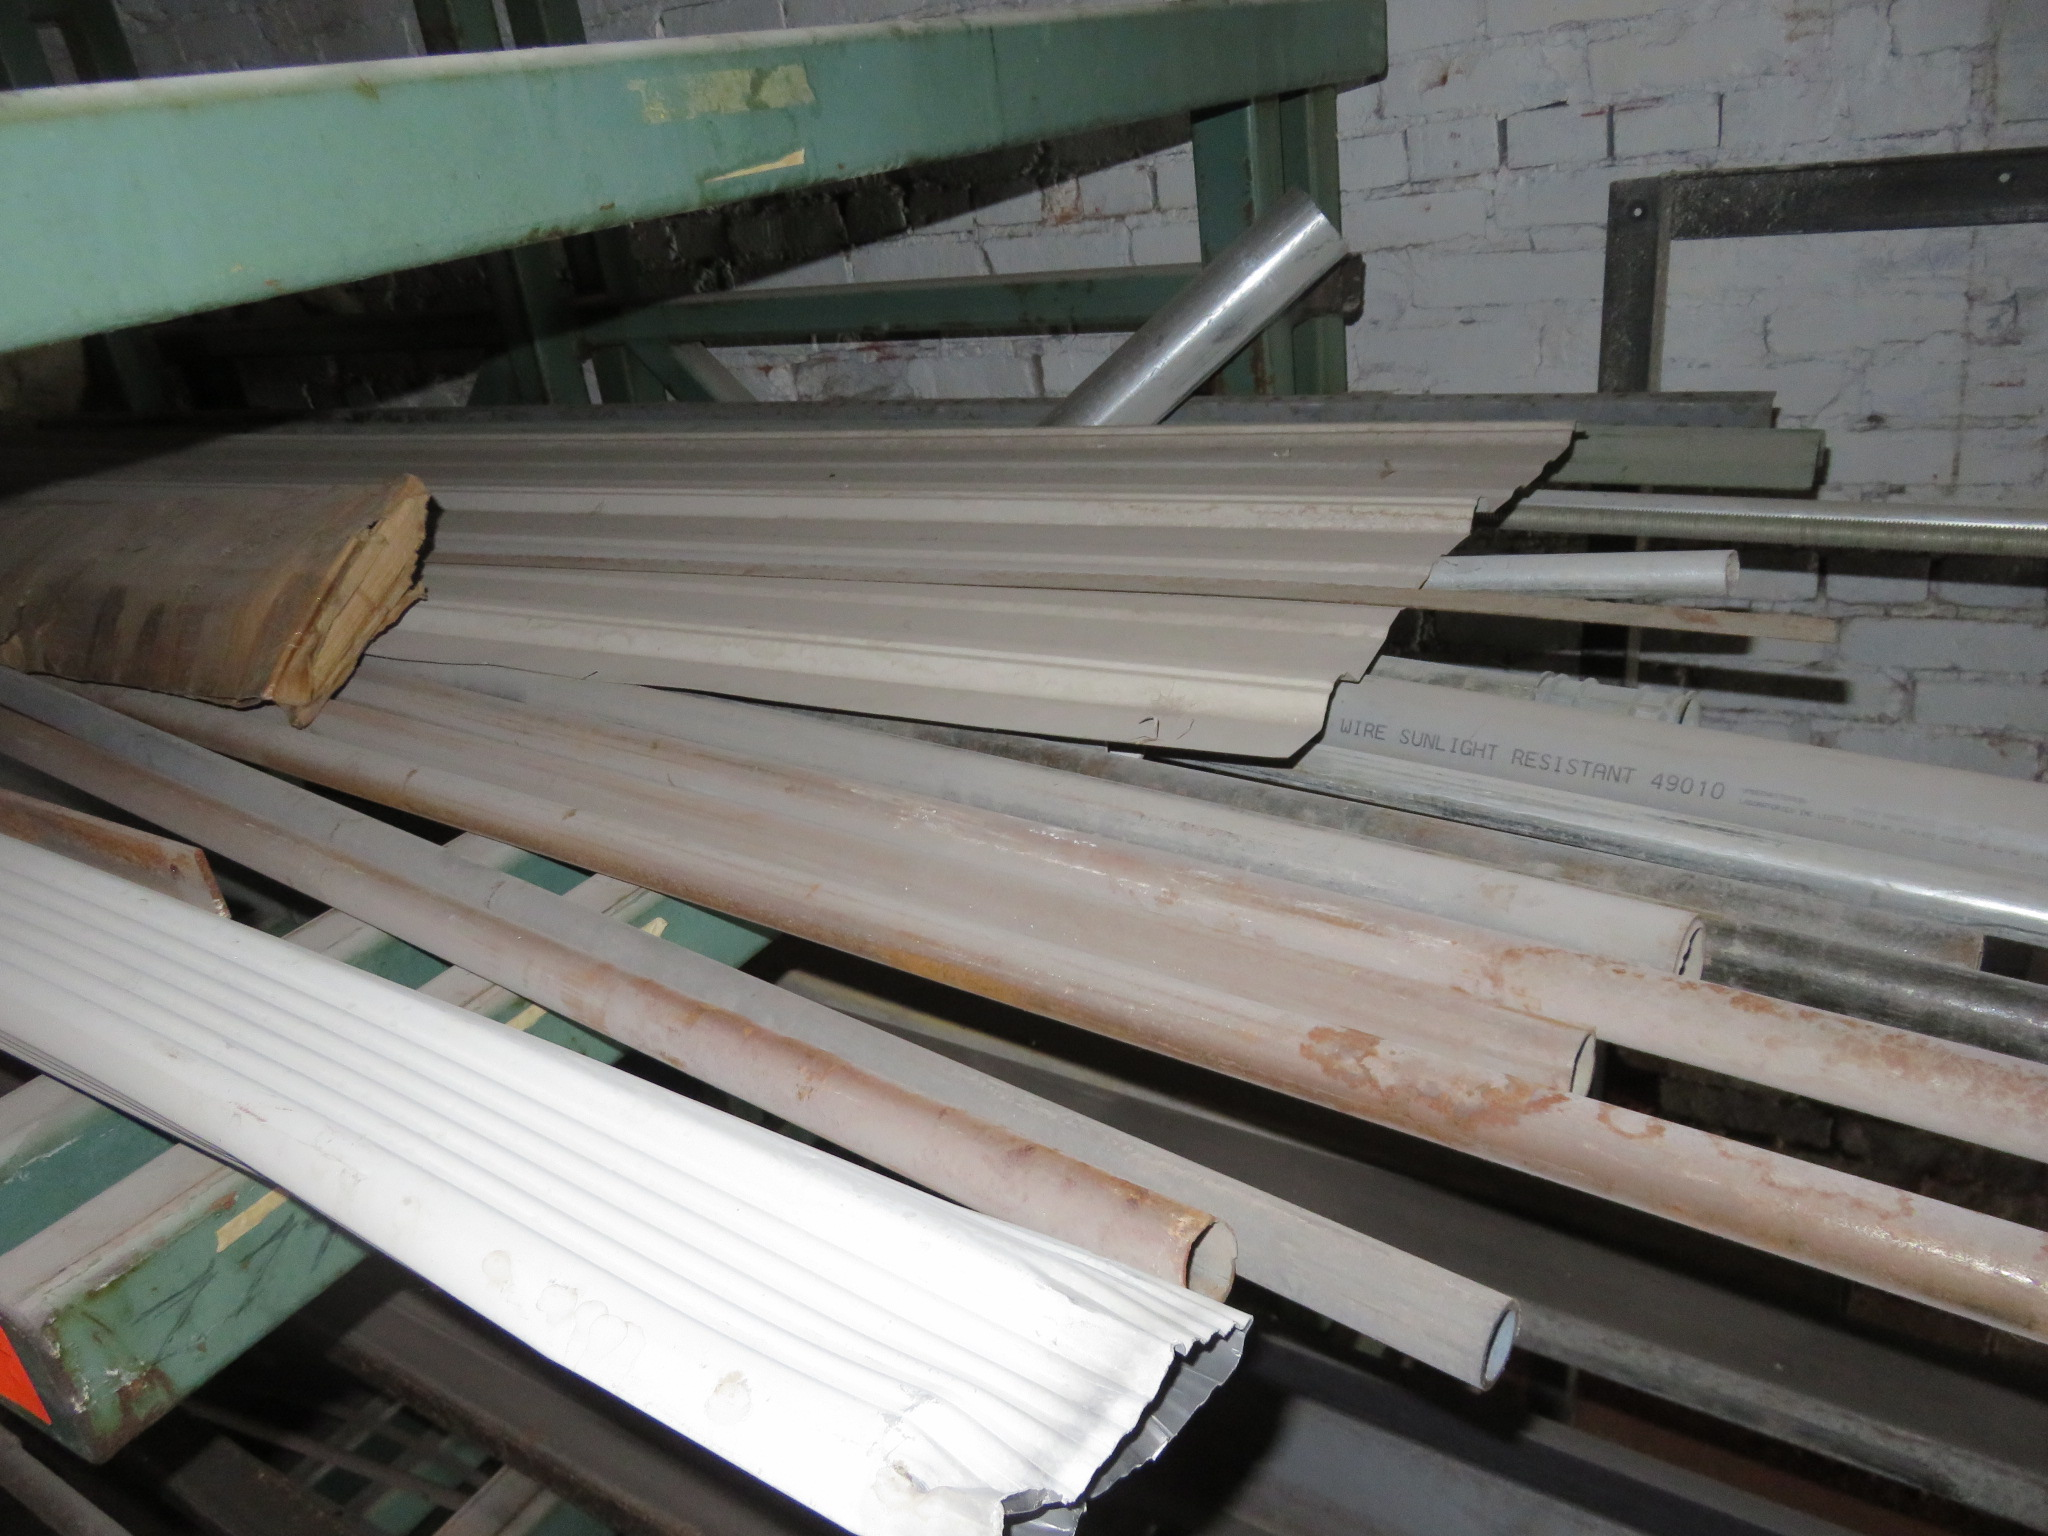 """Heavy Duty Cantilever Racking with Metal Stock Approx.123"""" x 56.5"""" x 82"""" - Image 2 of 6"""